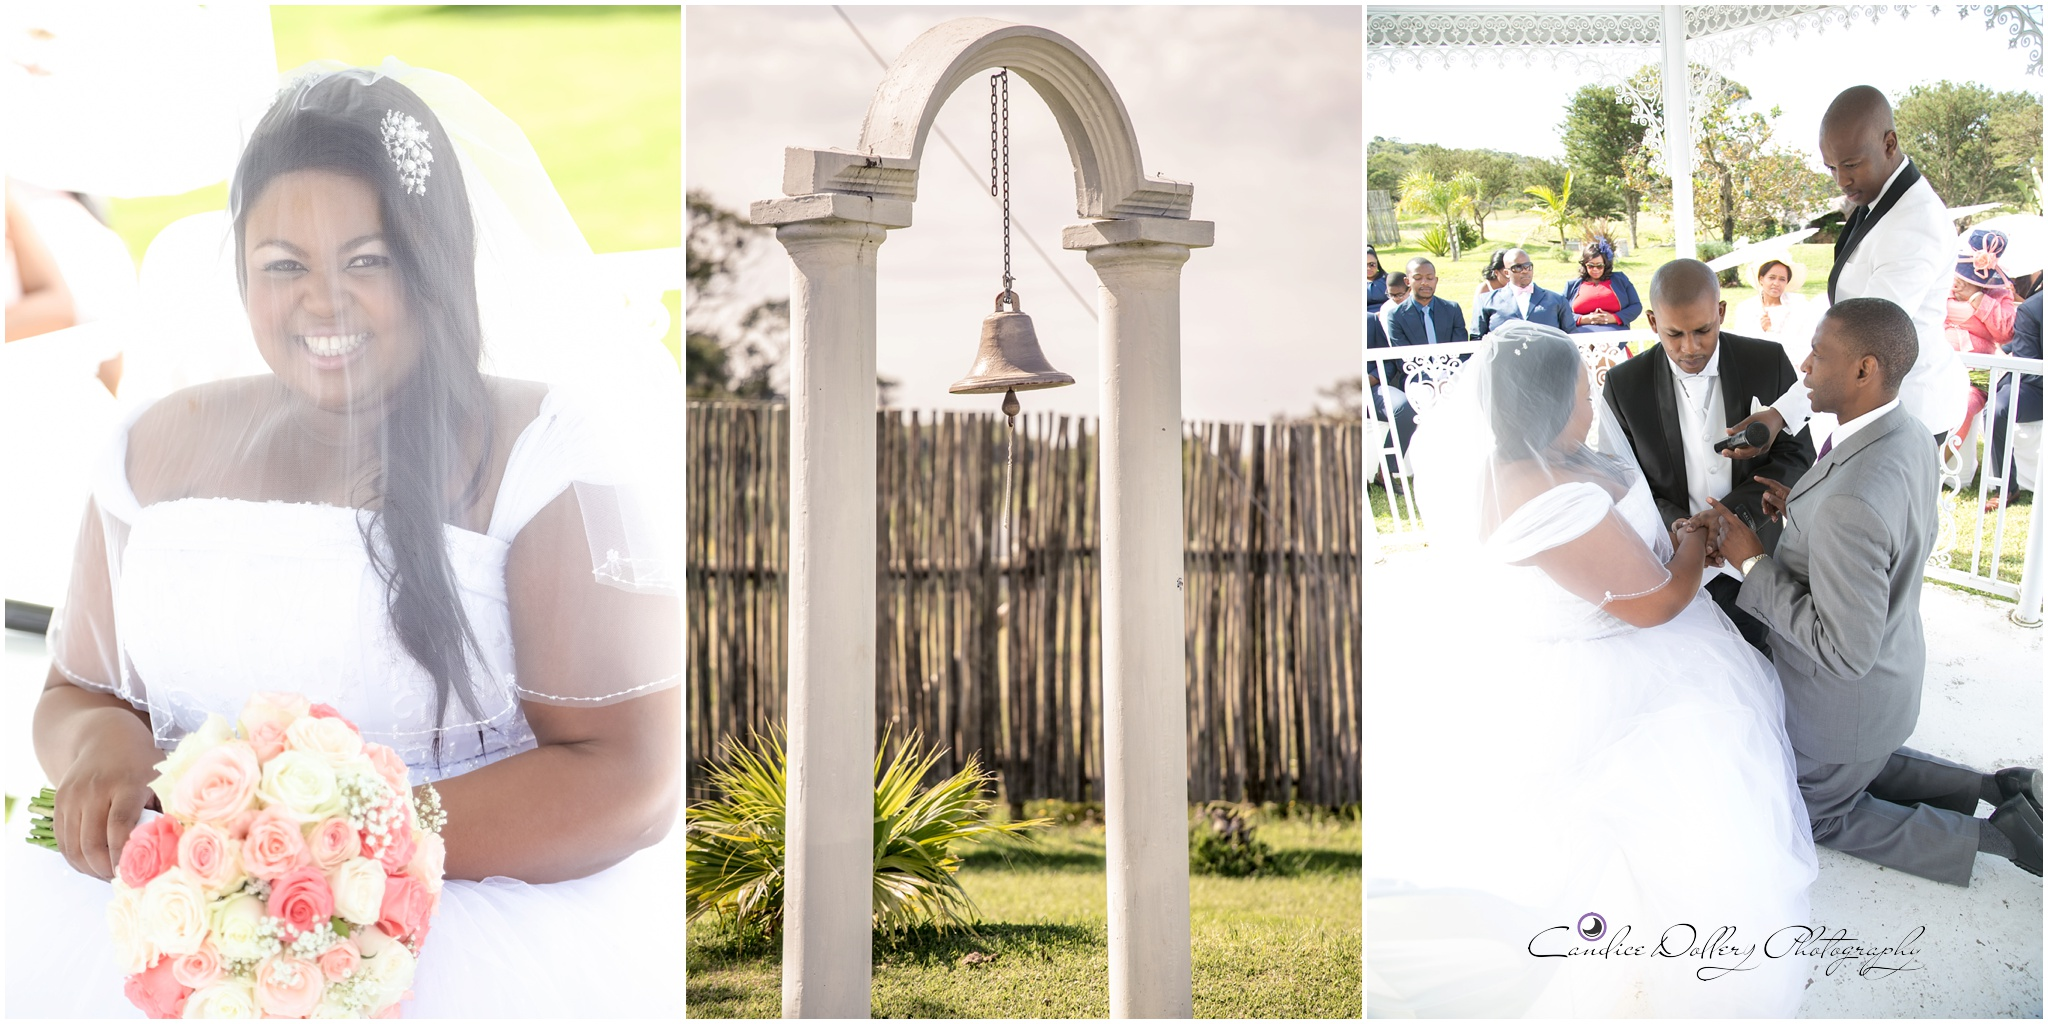 Wedding Gonubie Manor Thola & Phili-Candice Dollery Photograhy_4221